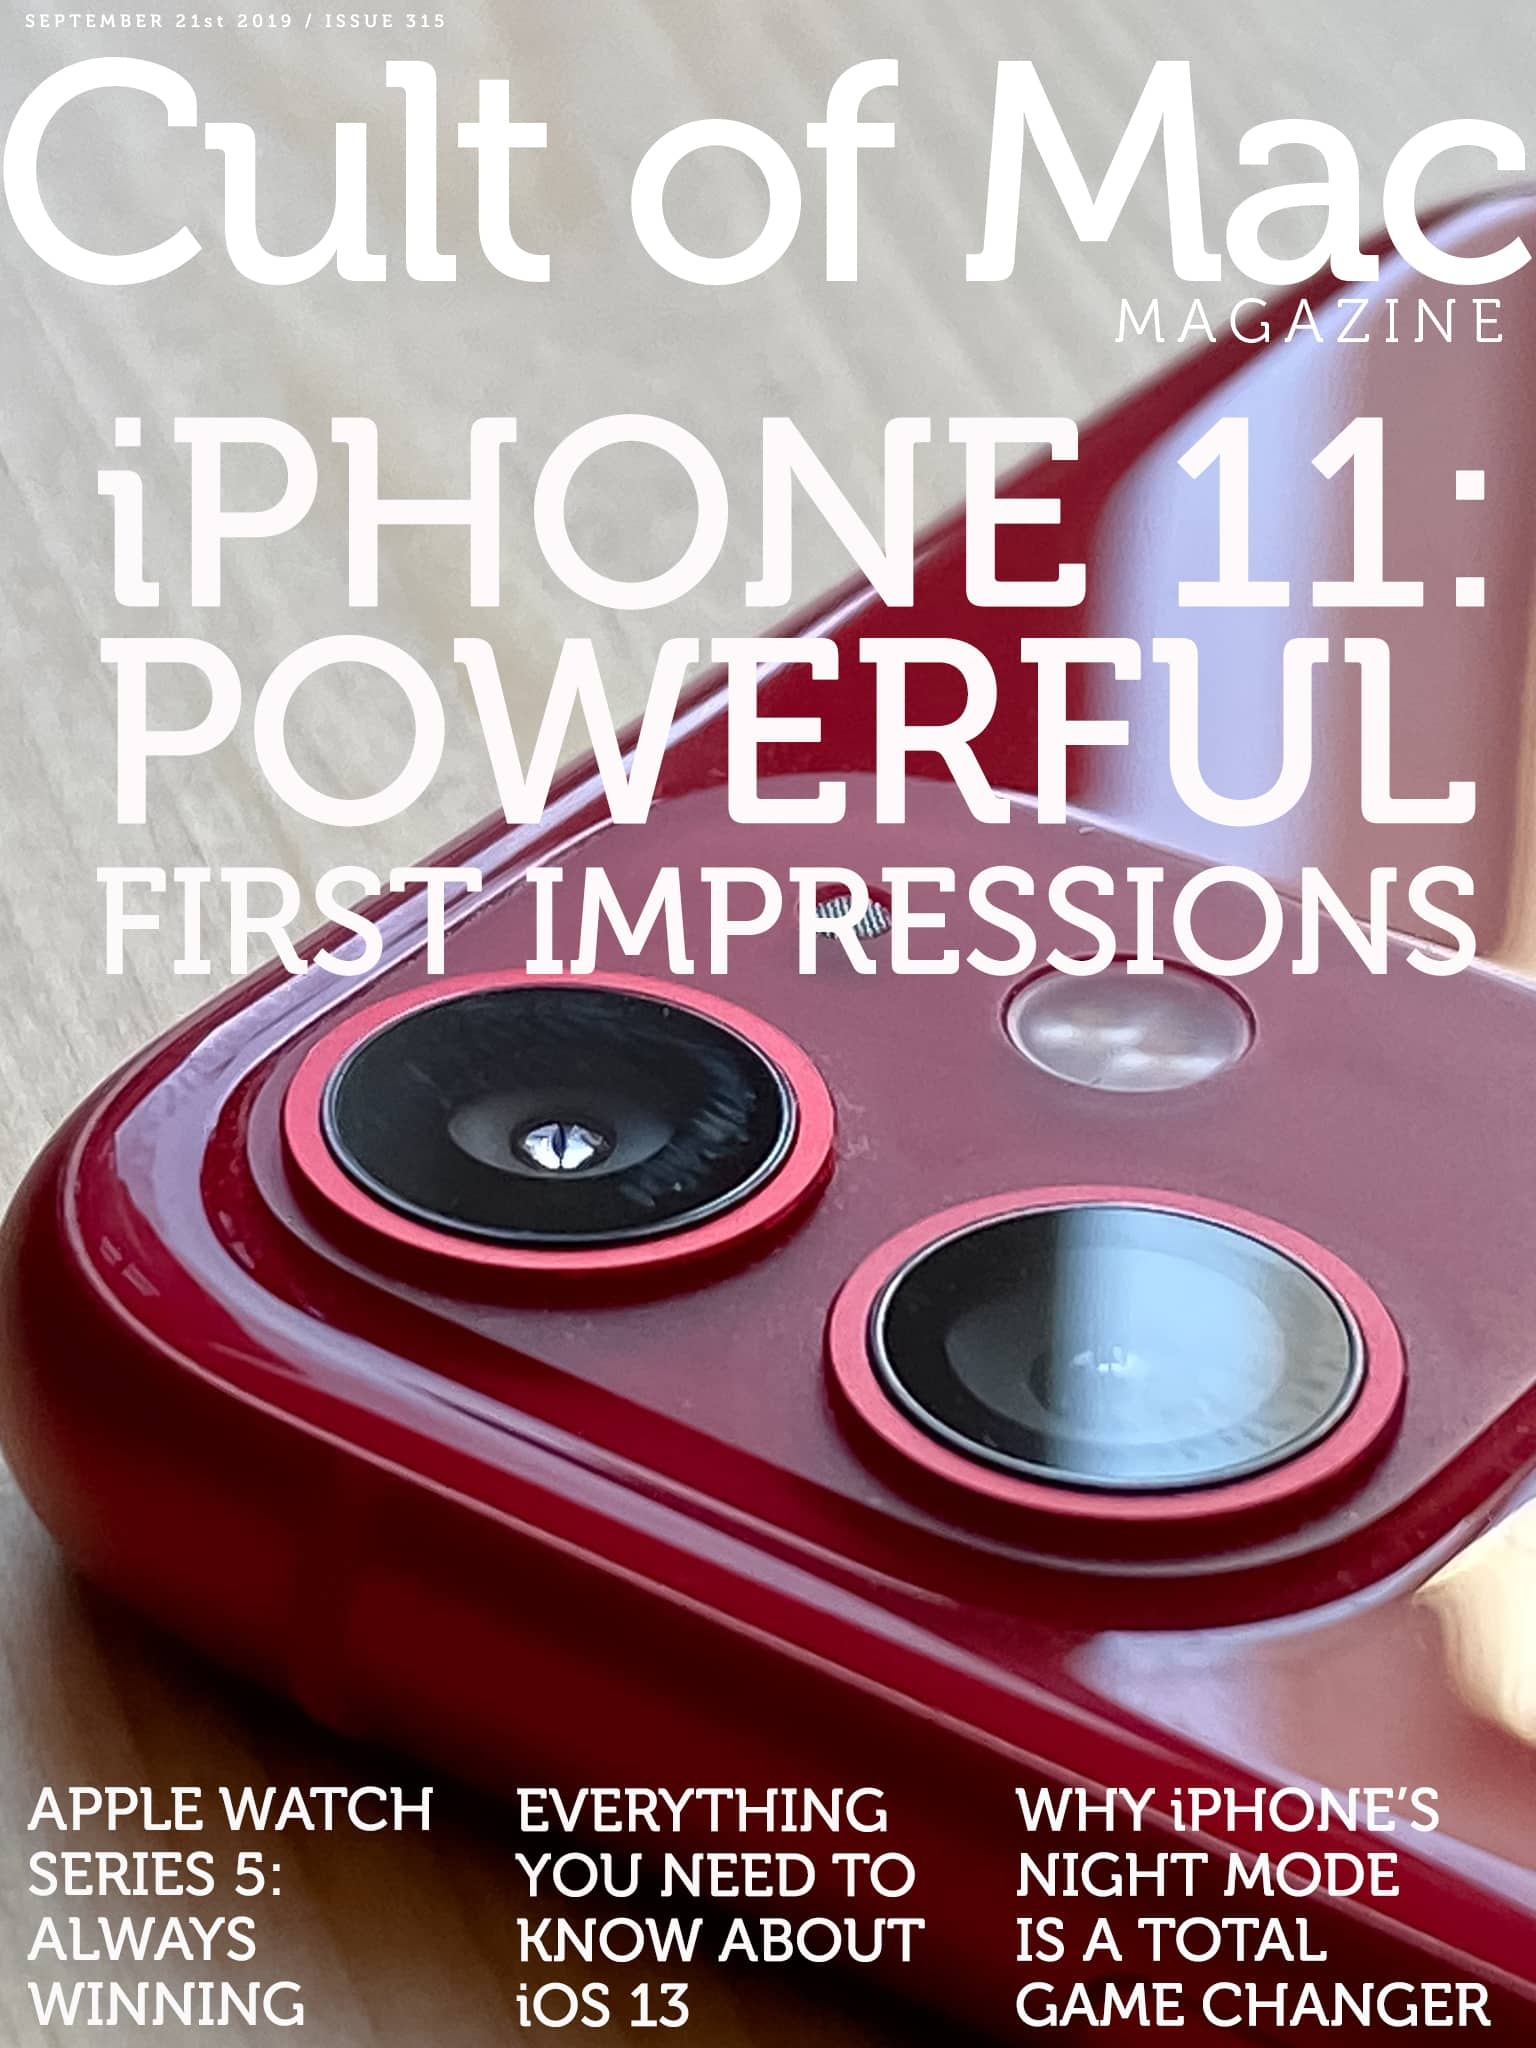 The iPhone 11 looks simply stunning in red. And that's just for starters ... read all about it in Cult of Mac Magazine 315.